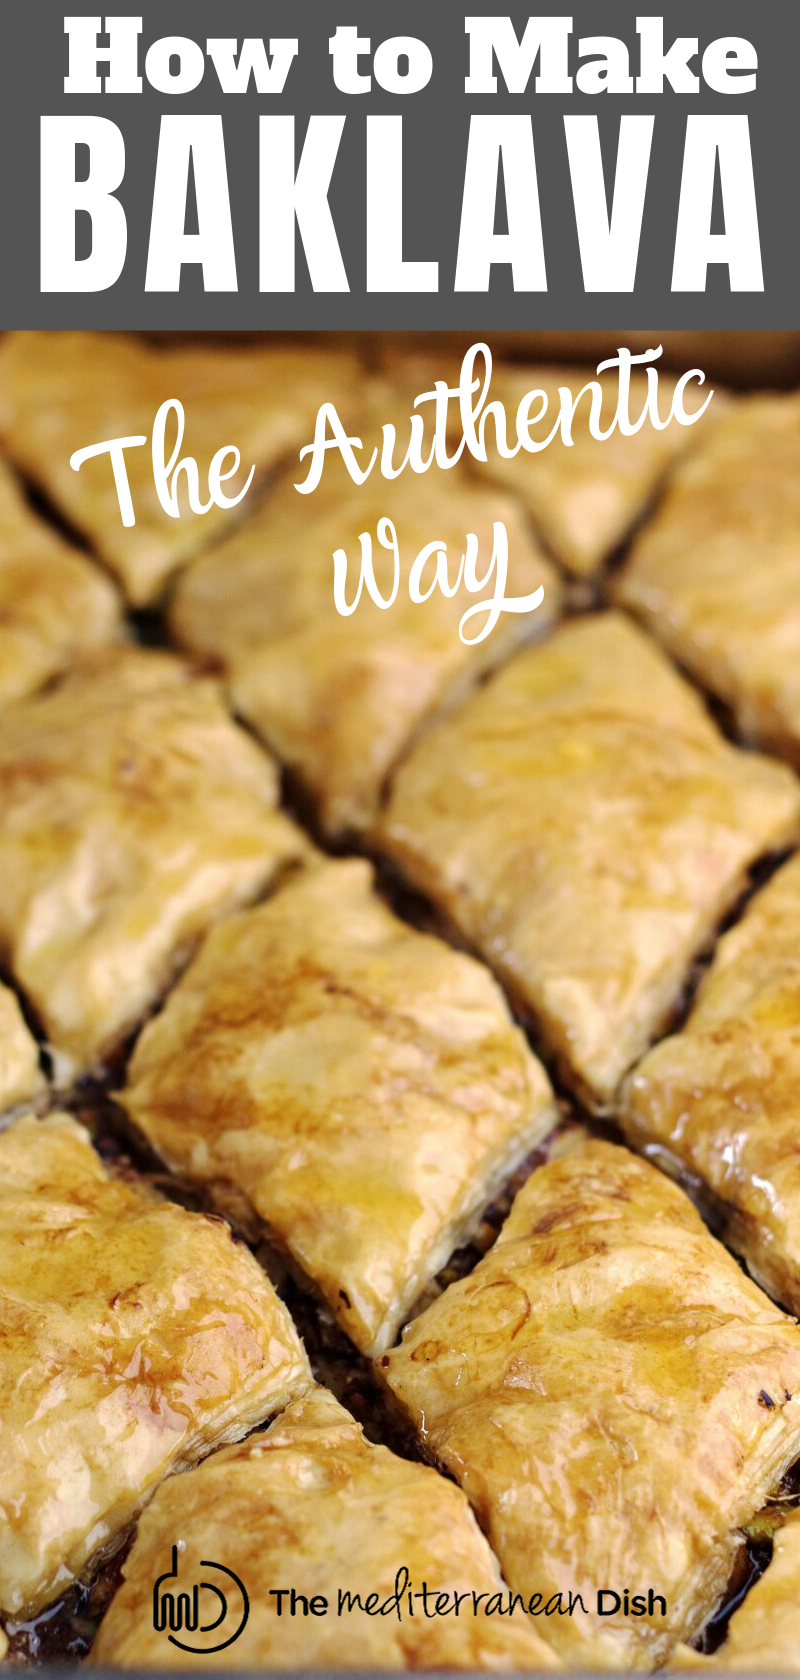 Can't get enough of your local Greek restaurant's baklava? This tutorial is all you need to make the BEST perfectly flaky baklava with a delicious nut mixture nestled right in. And the homemade syrup is to die-for! Recipe comes with video, go check it out today!